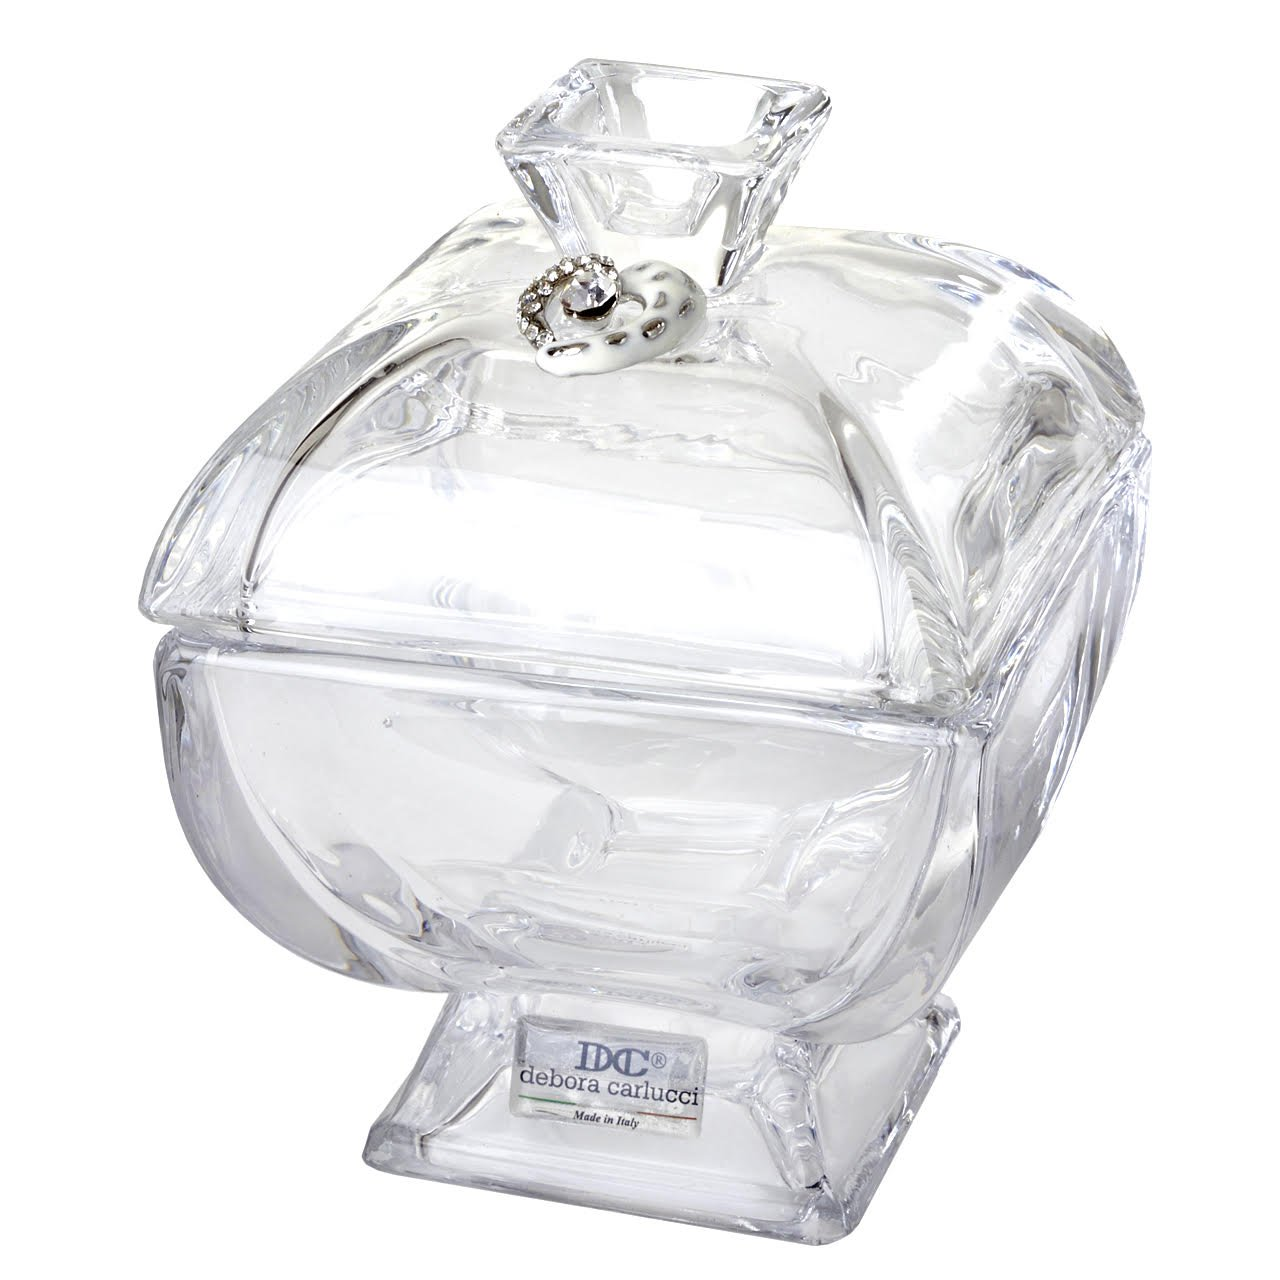 5th Avenue Collection Italian Crystal Candy Dish, Candy Bowl With Porcelain Heart and Swarovski Accents, Made In Italy 5th Ave Store 1715H